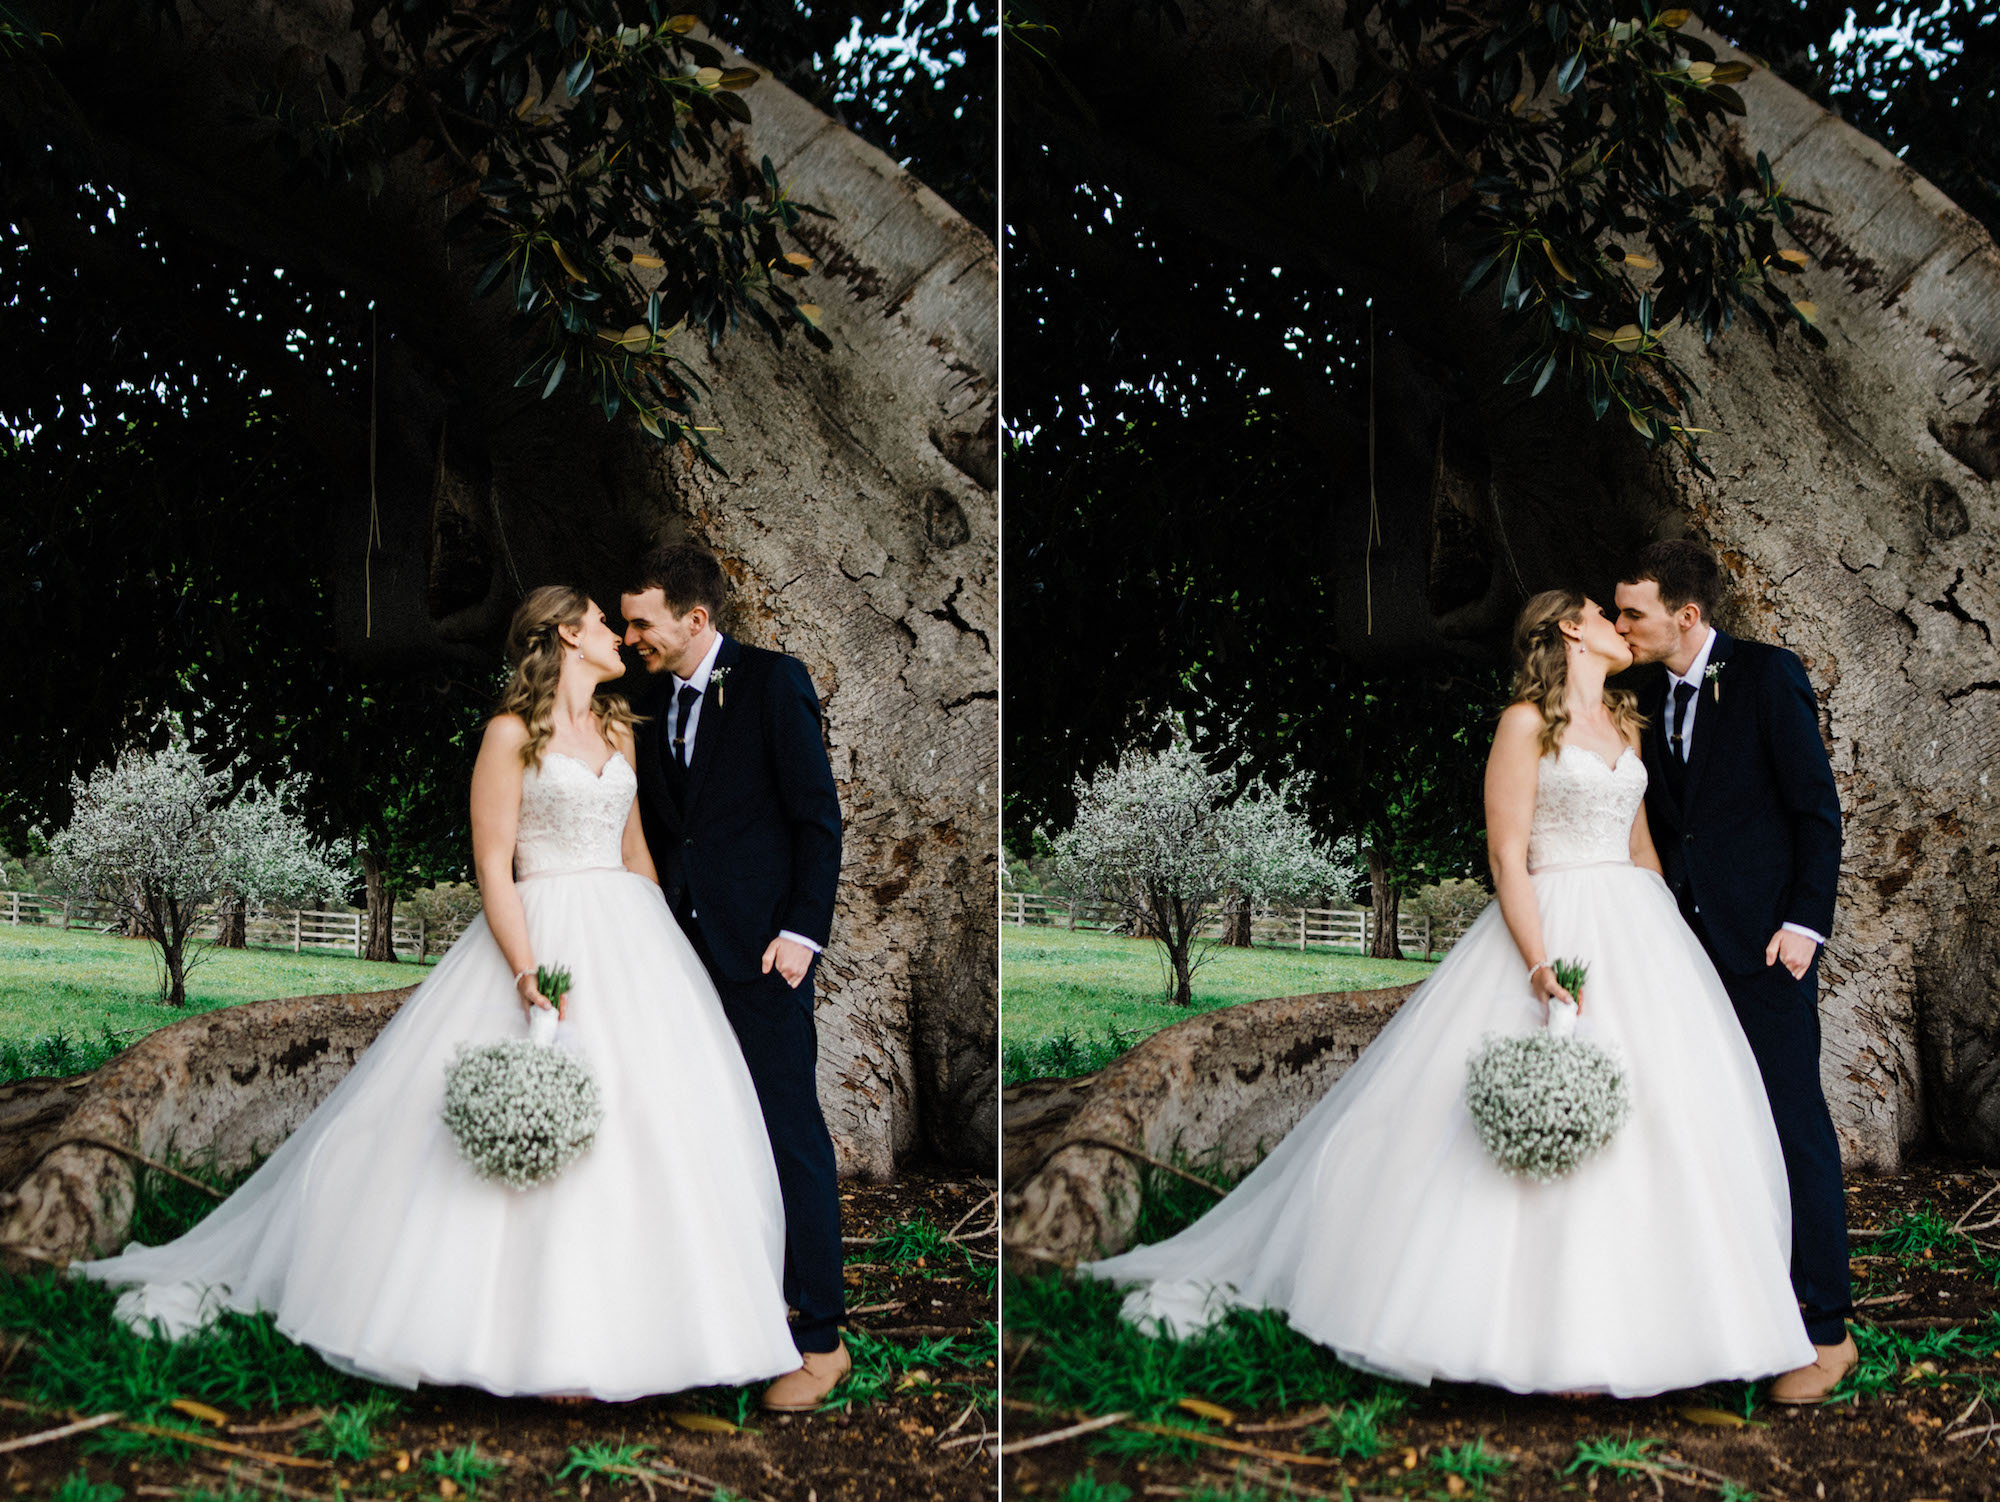 The bride & groom share a moment together under the Moreton Bay Fig Tree at Quarry Farm.